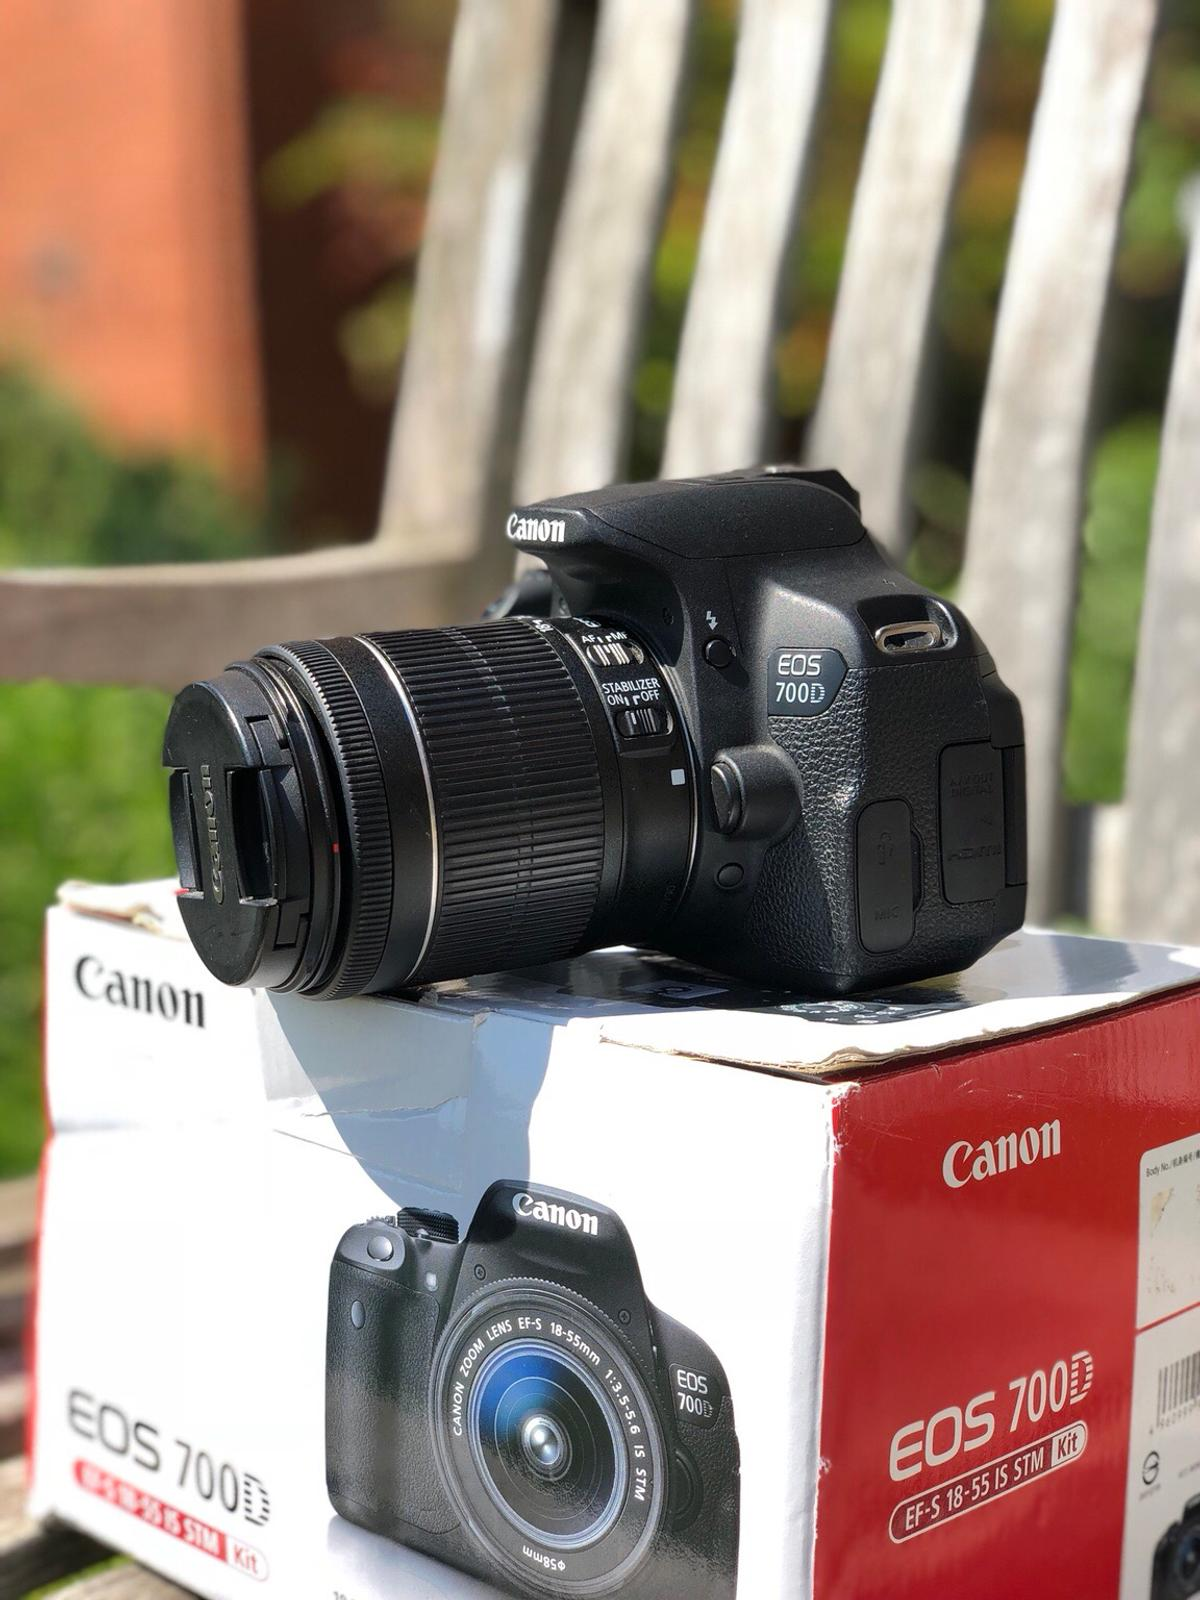 Canon EOS 700D Camera + Lens in SW6 Fulham for £280 00 for